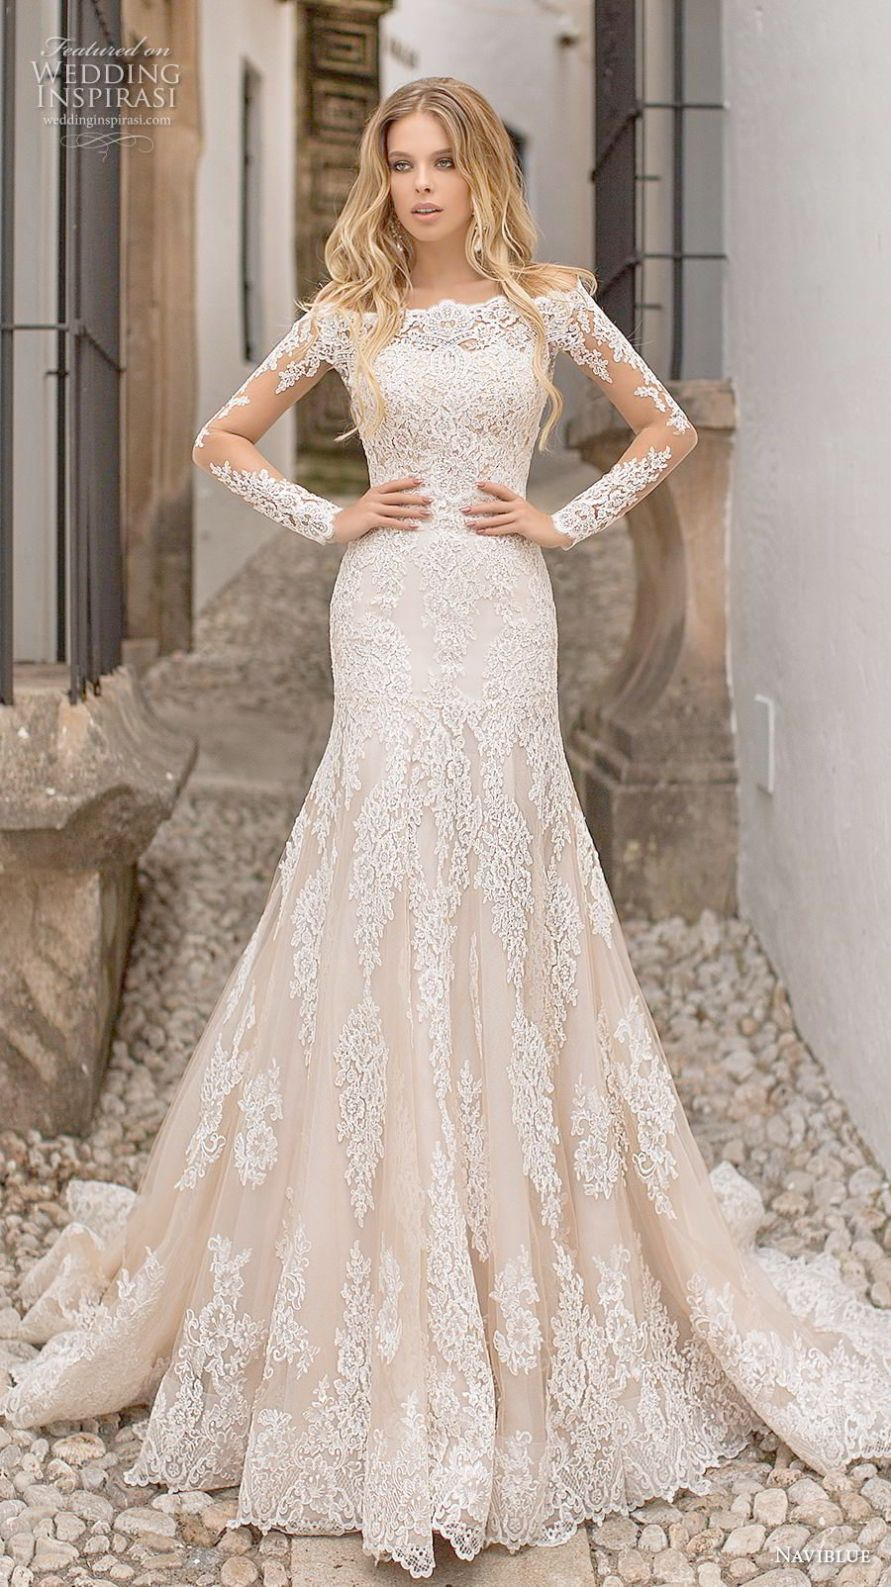 Lace tulle princess wedding dress strapless wedding dresses with